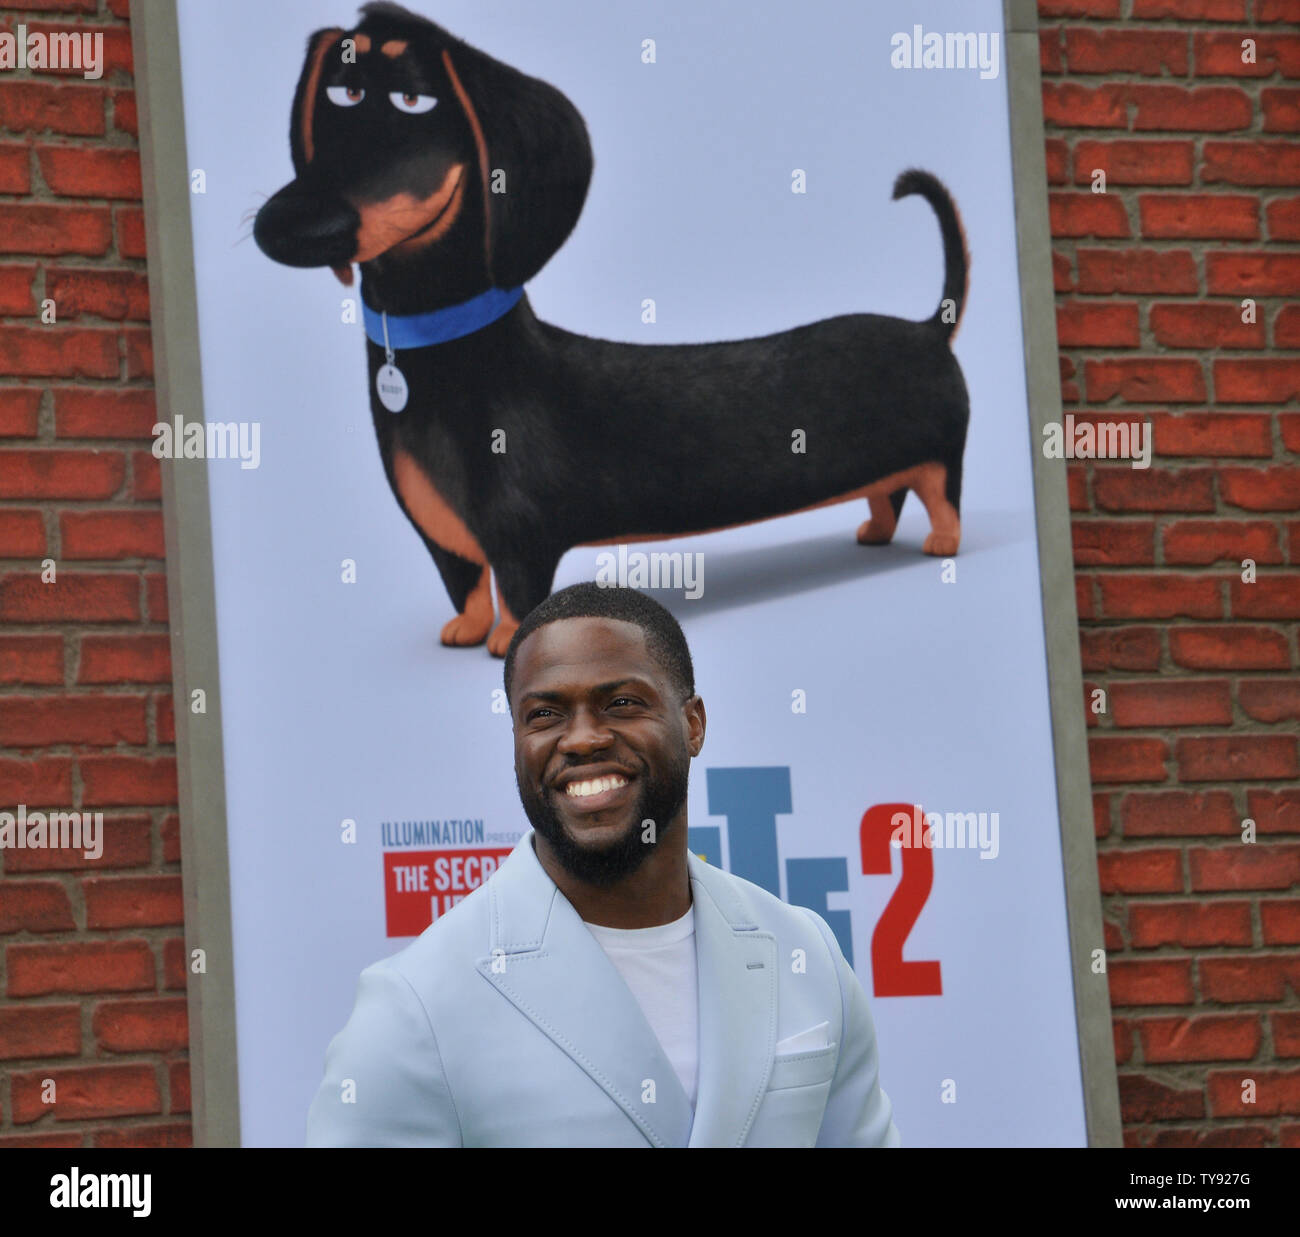 Cast Member Kevin Hart The Voice Of Snowball In The Animated Motion Picture Comedy The Secret Life Of Pets 2 Attends The Premiere Of The Film At The Regency Village Theatre In